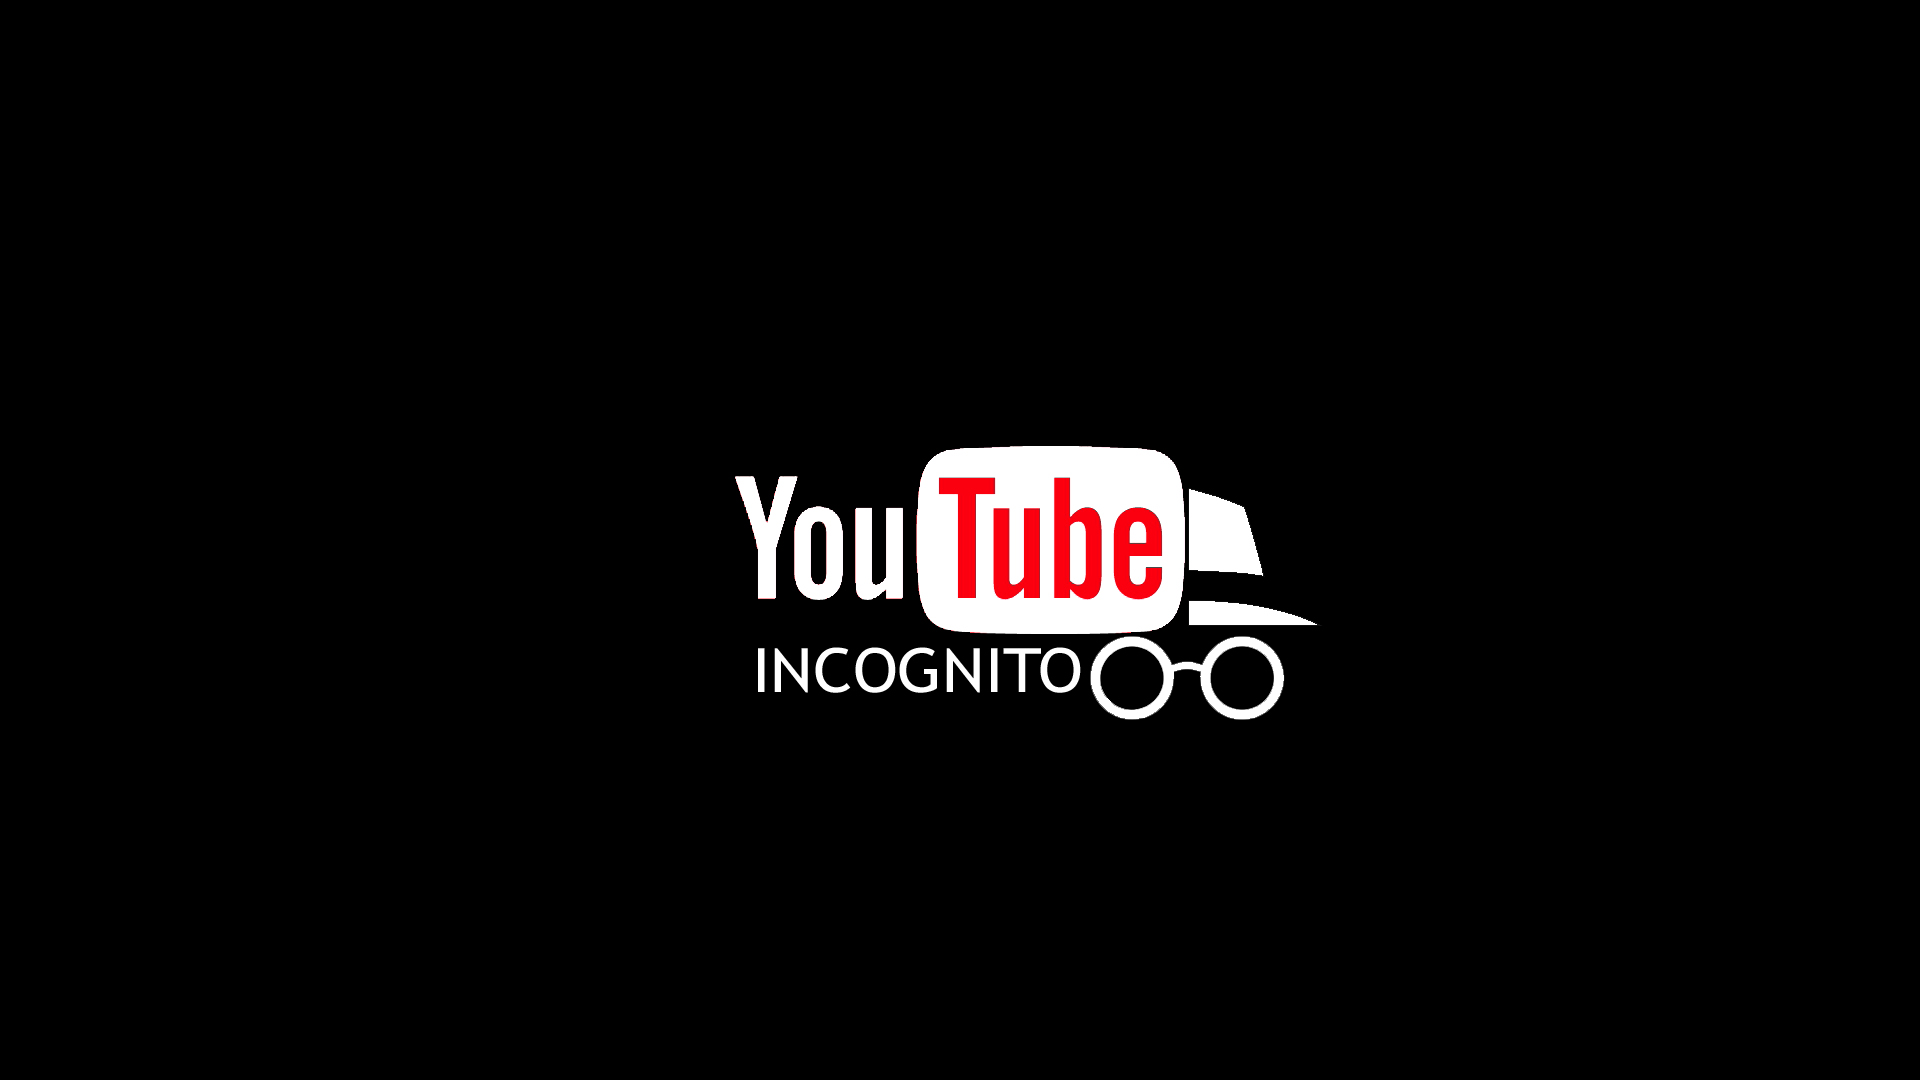 Incognito-Mode-In-Youtube